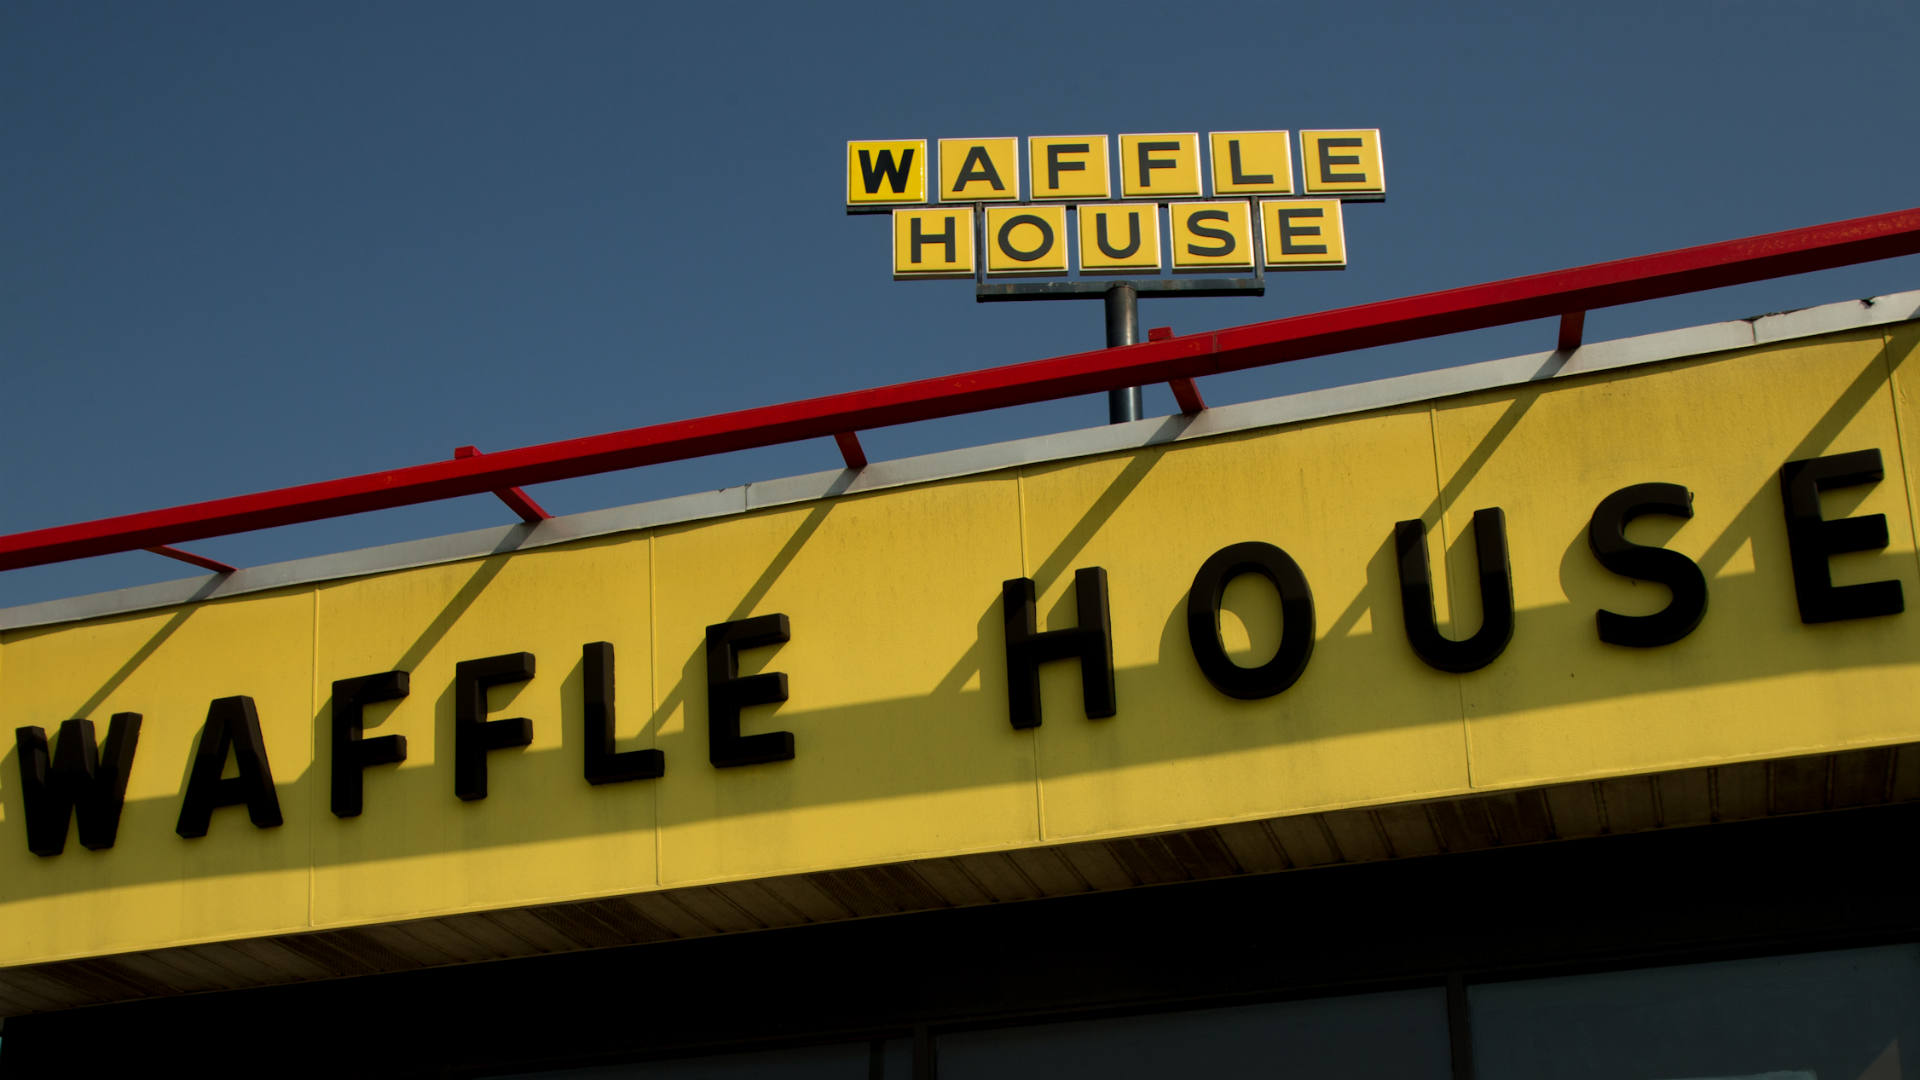 Journalist pays for fantasy football failure with Waffle House marathon, ends up going viral